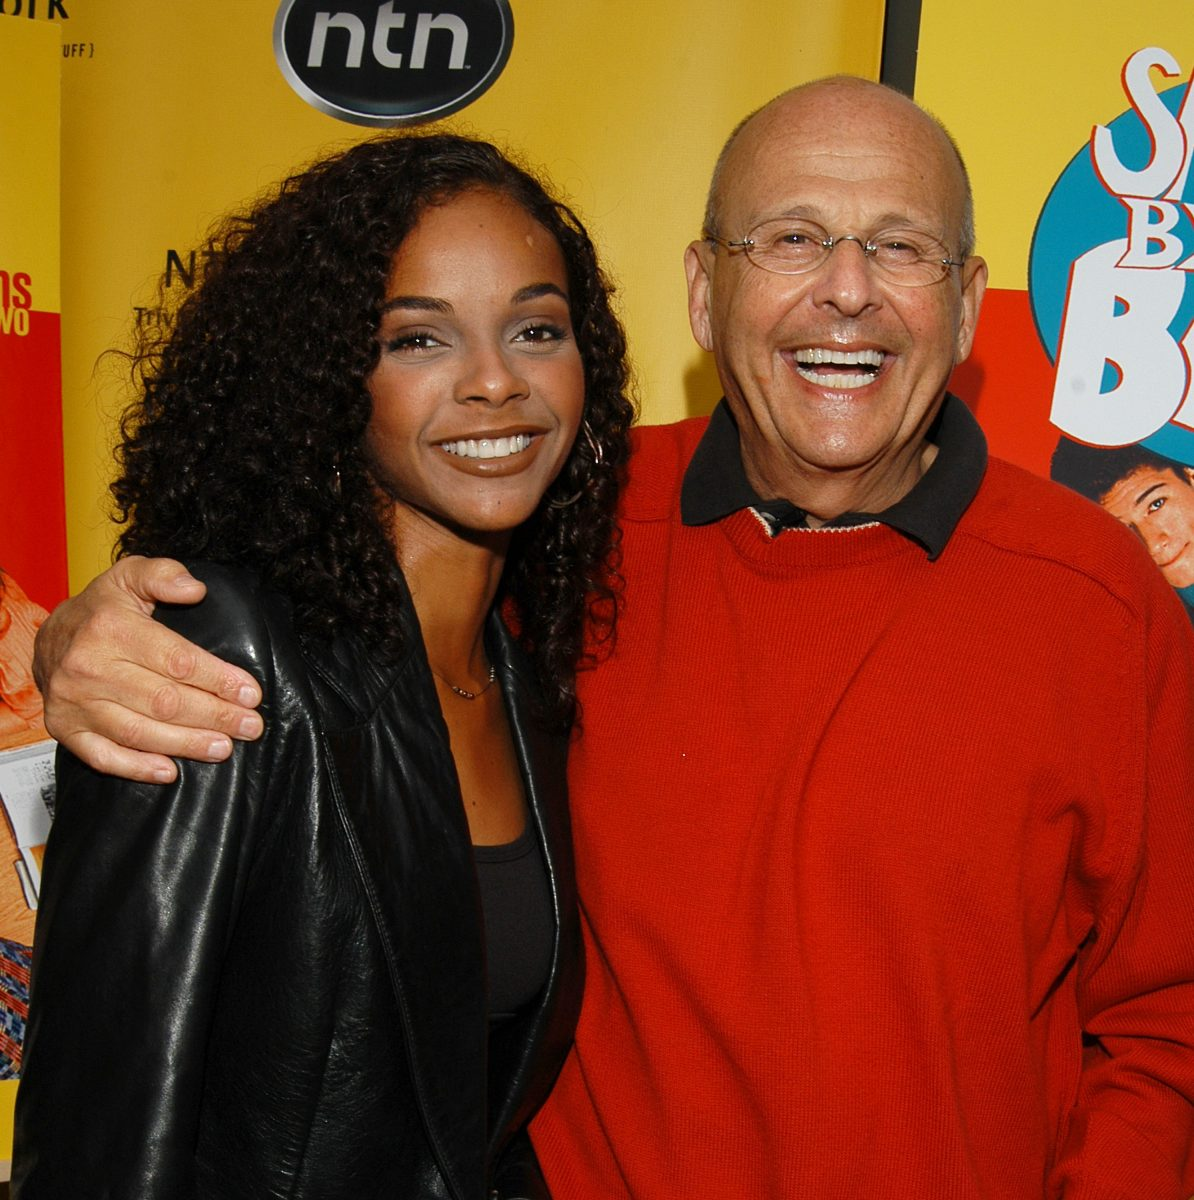 Lark Voorhies (Lisa Turtle) and televison producer, Peter Engel pose for a photo at the 'Saved by the Bell' Season 1 and Season 2 DVD release event